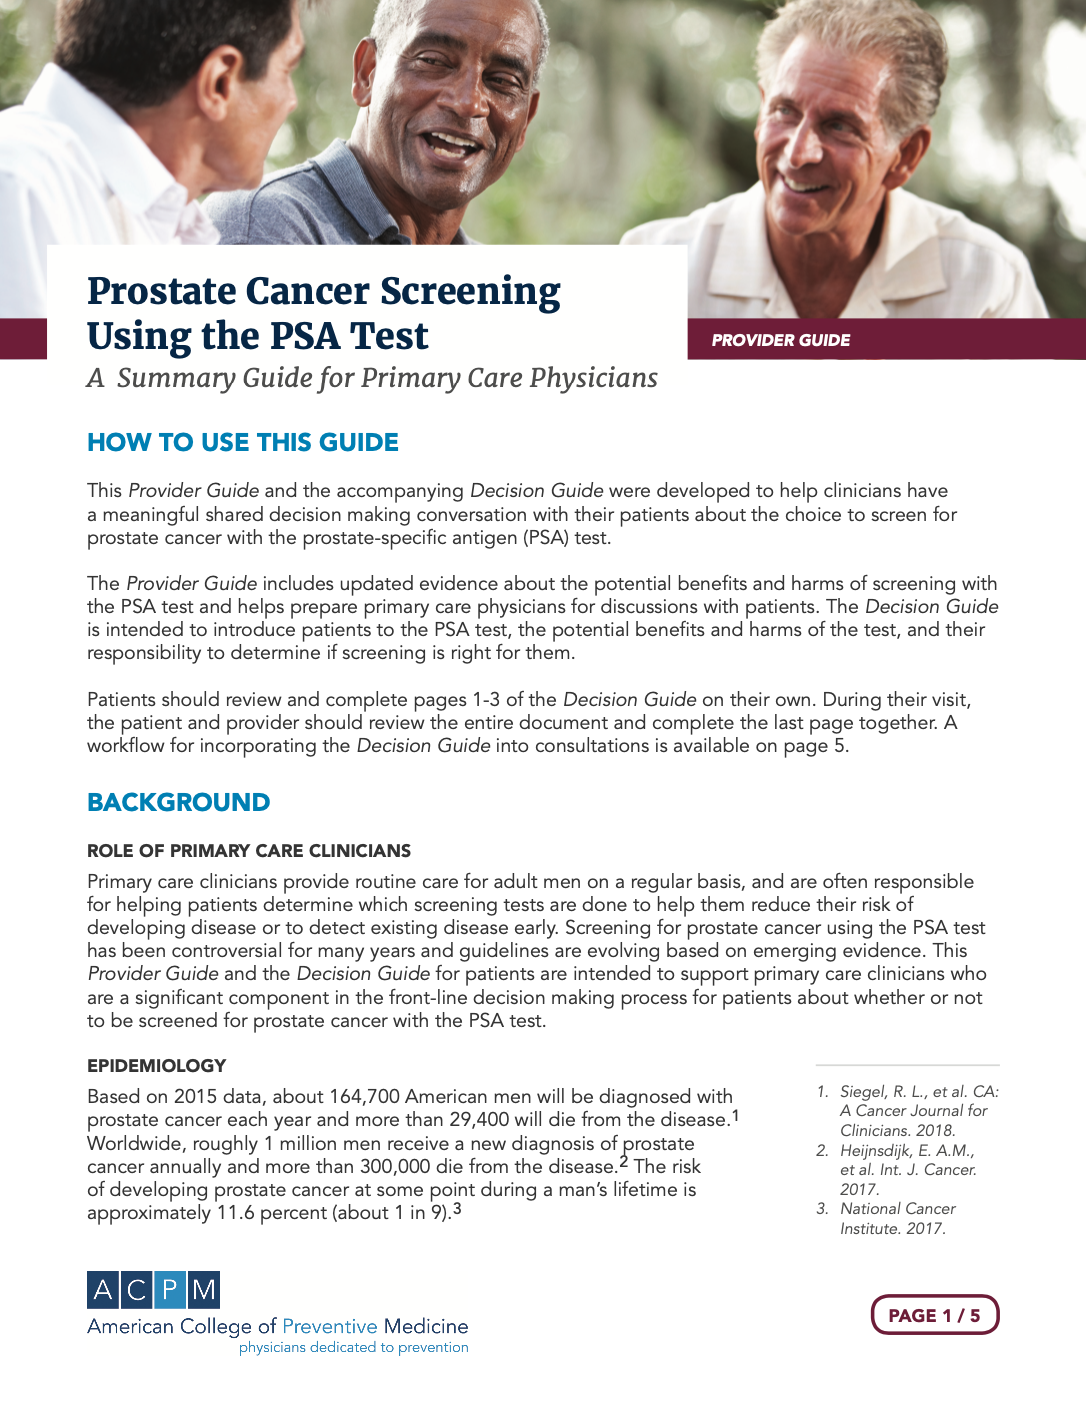 Provider instruction front page